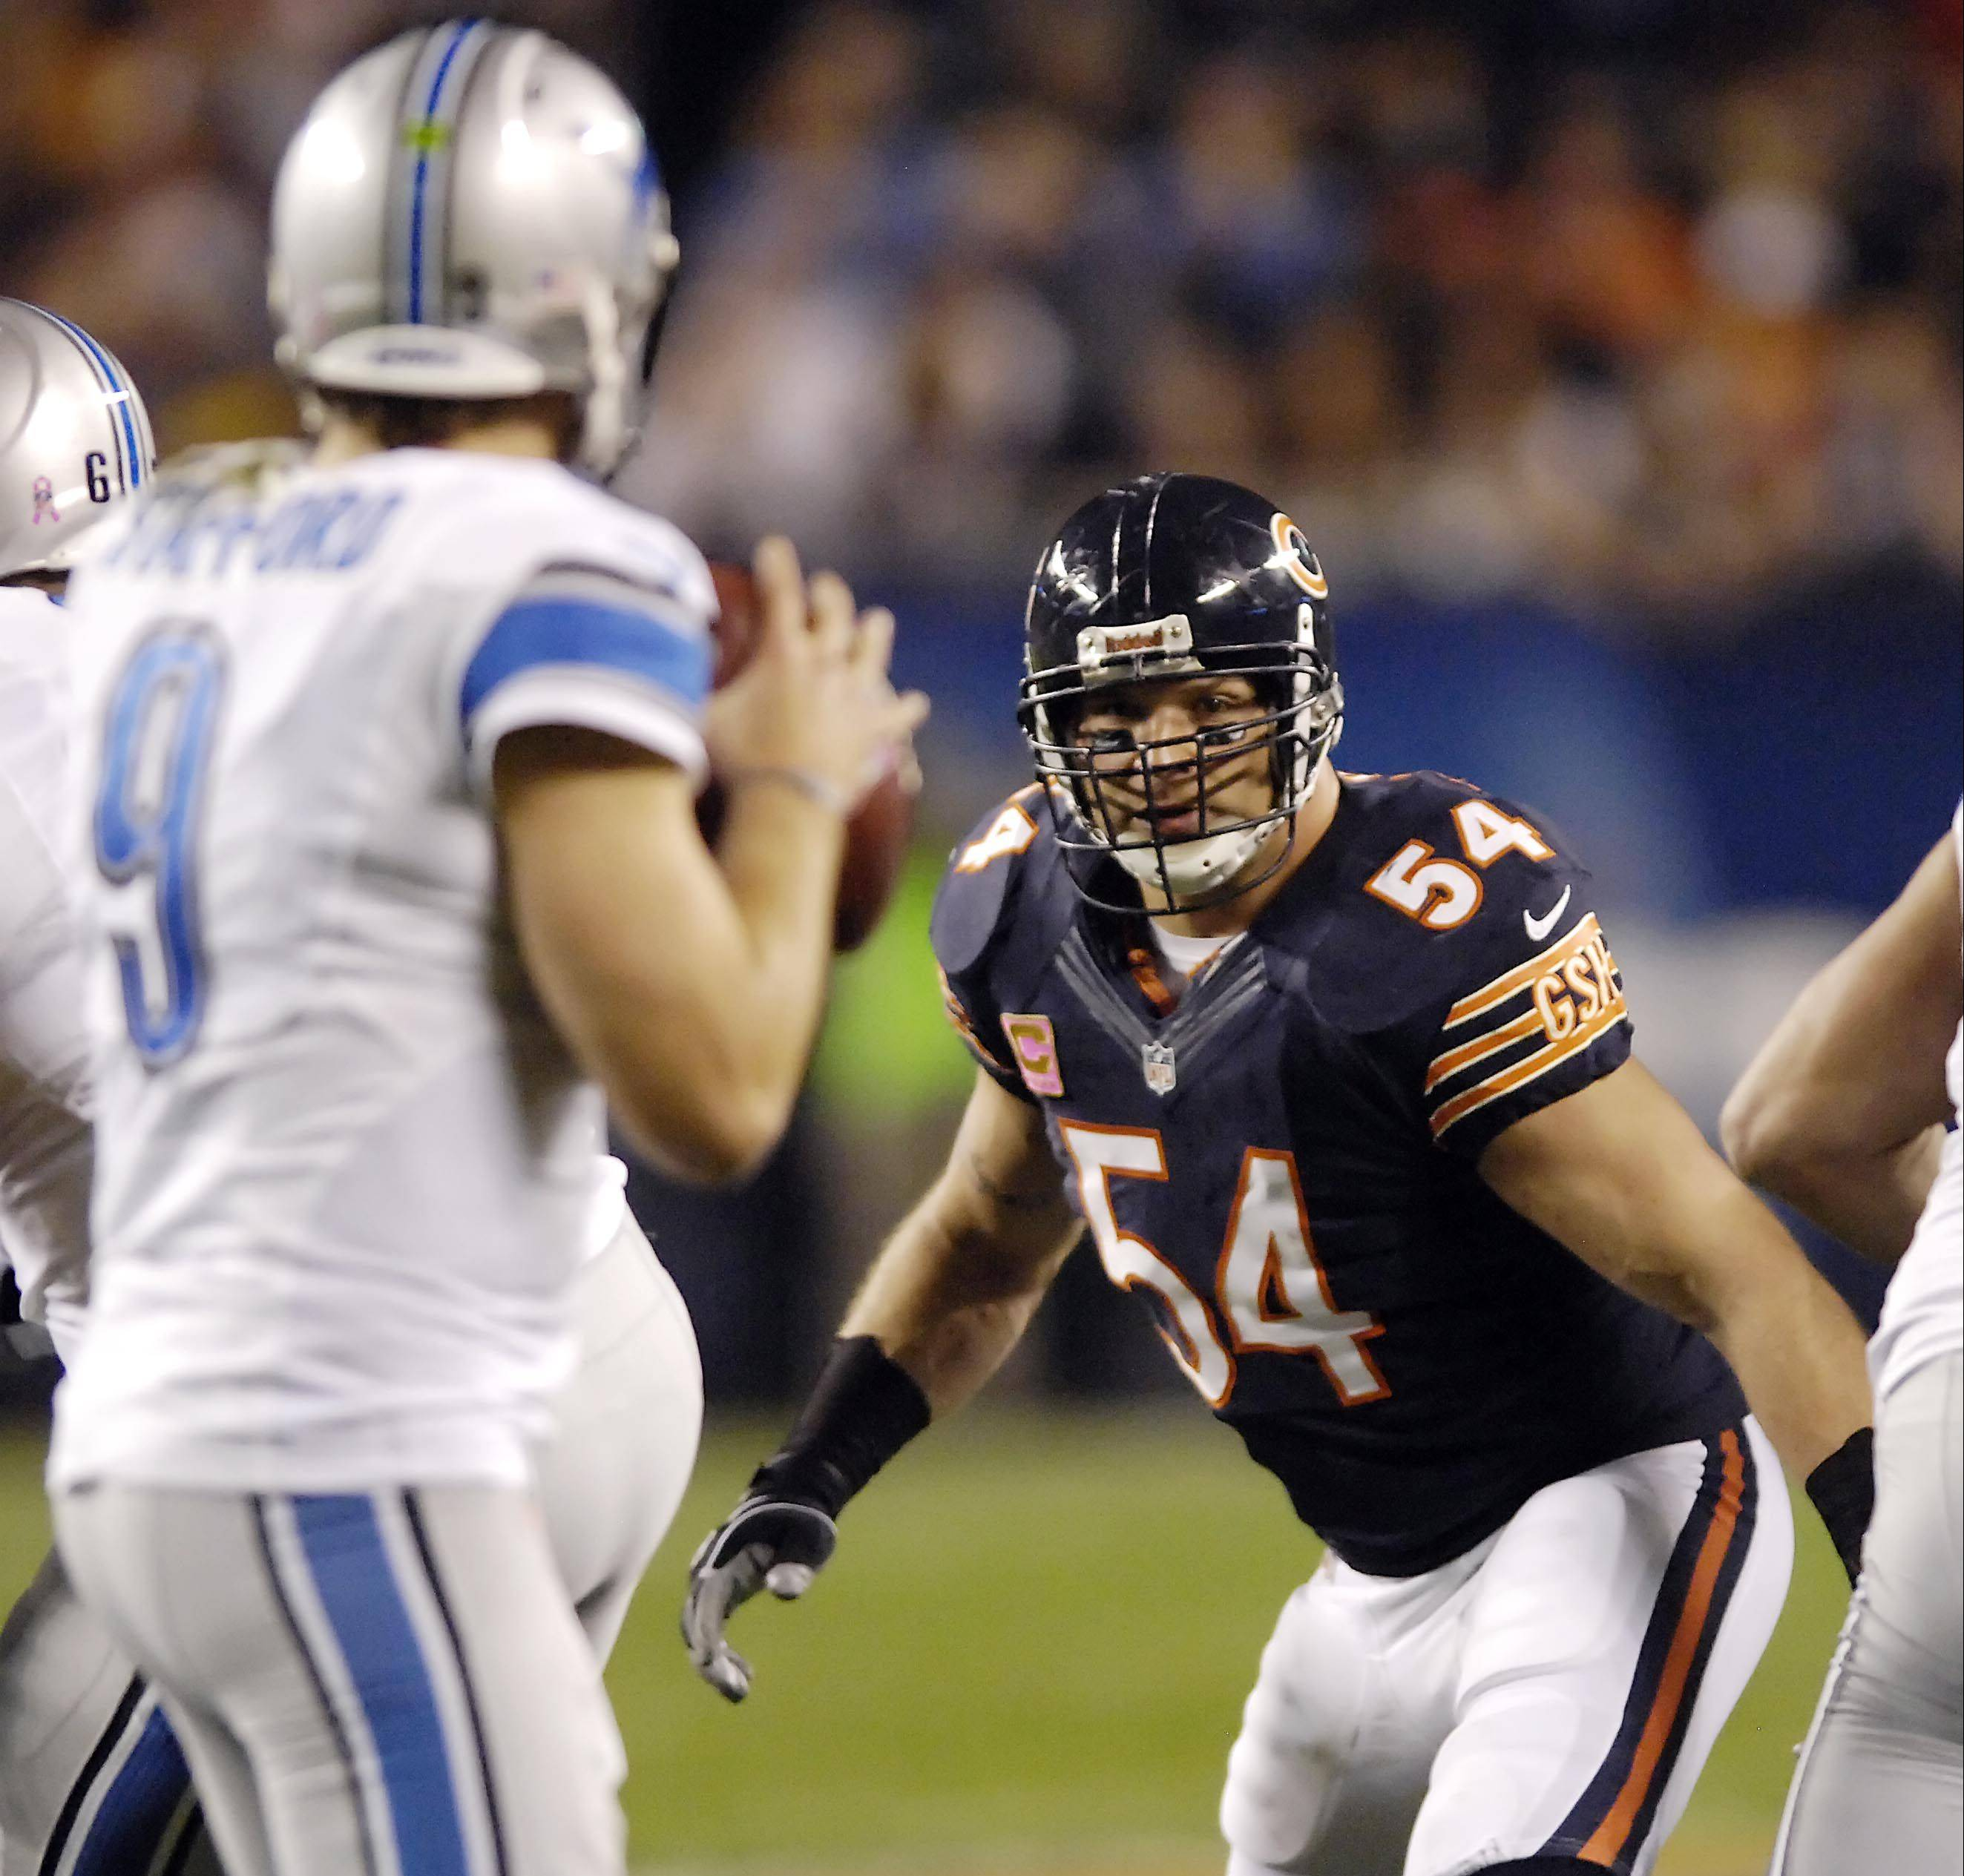 The Bears' Brian Urlacher has Lions QB Matthew Stafford in his sights during the first half at Soldier Field on Monday. Stafford was forced to scramble and was sacked by Julius Peppers.